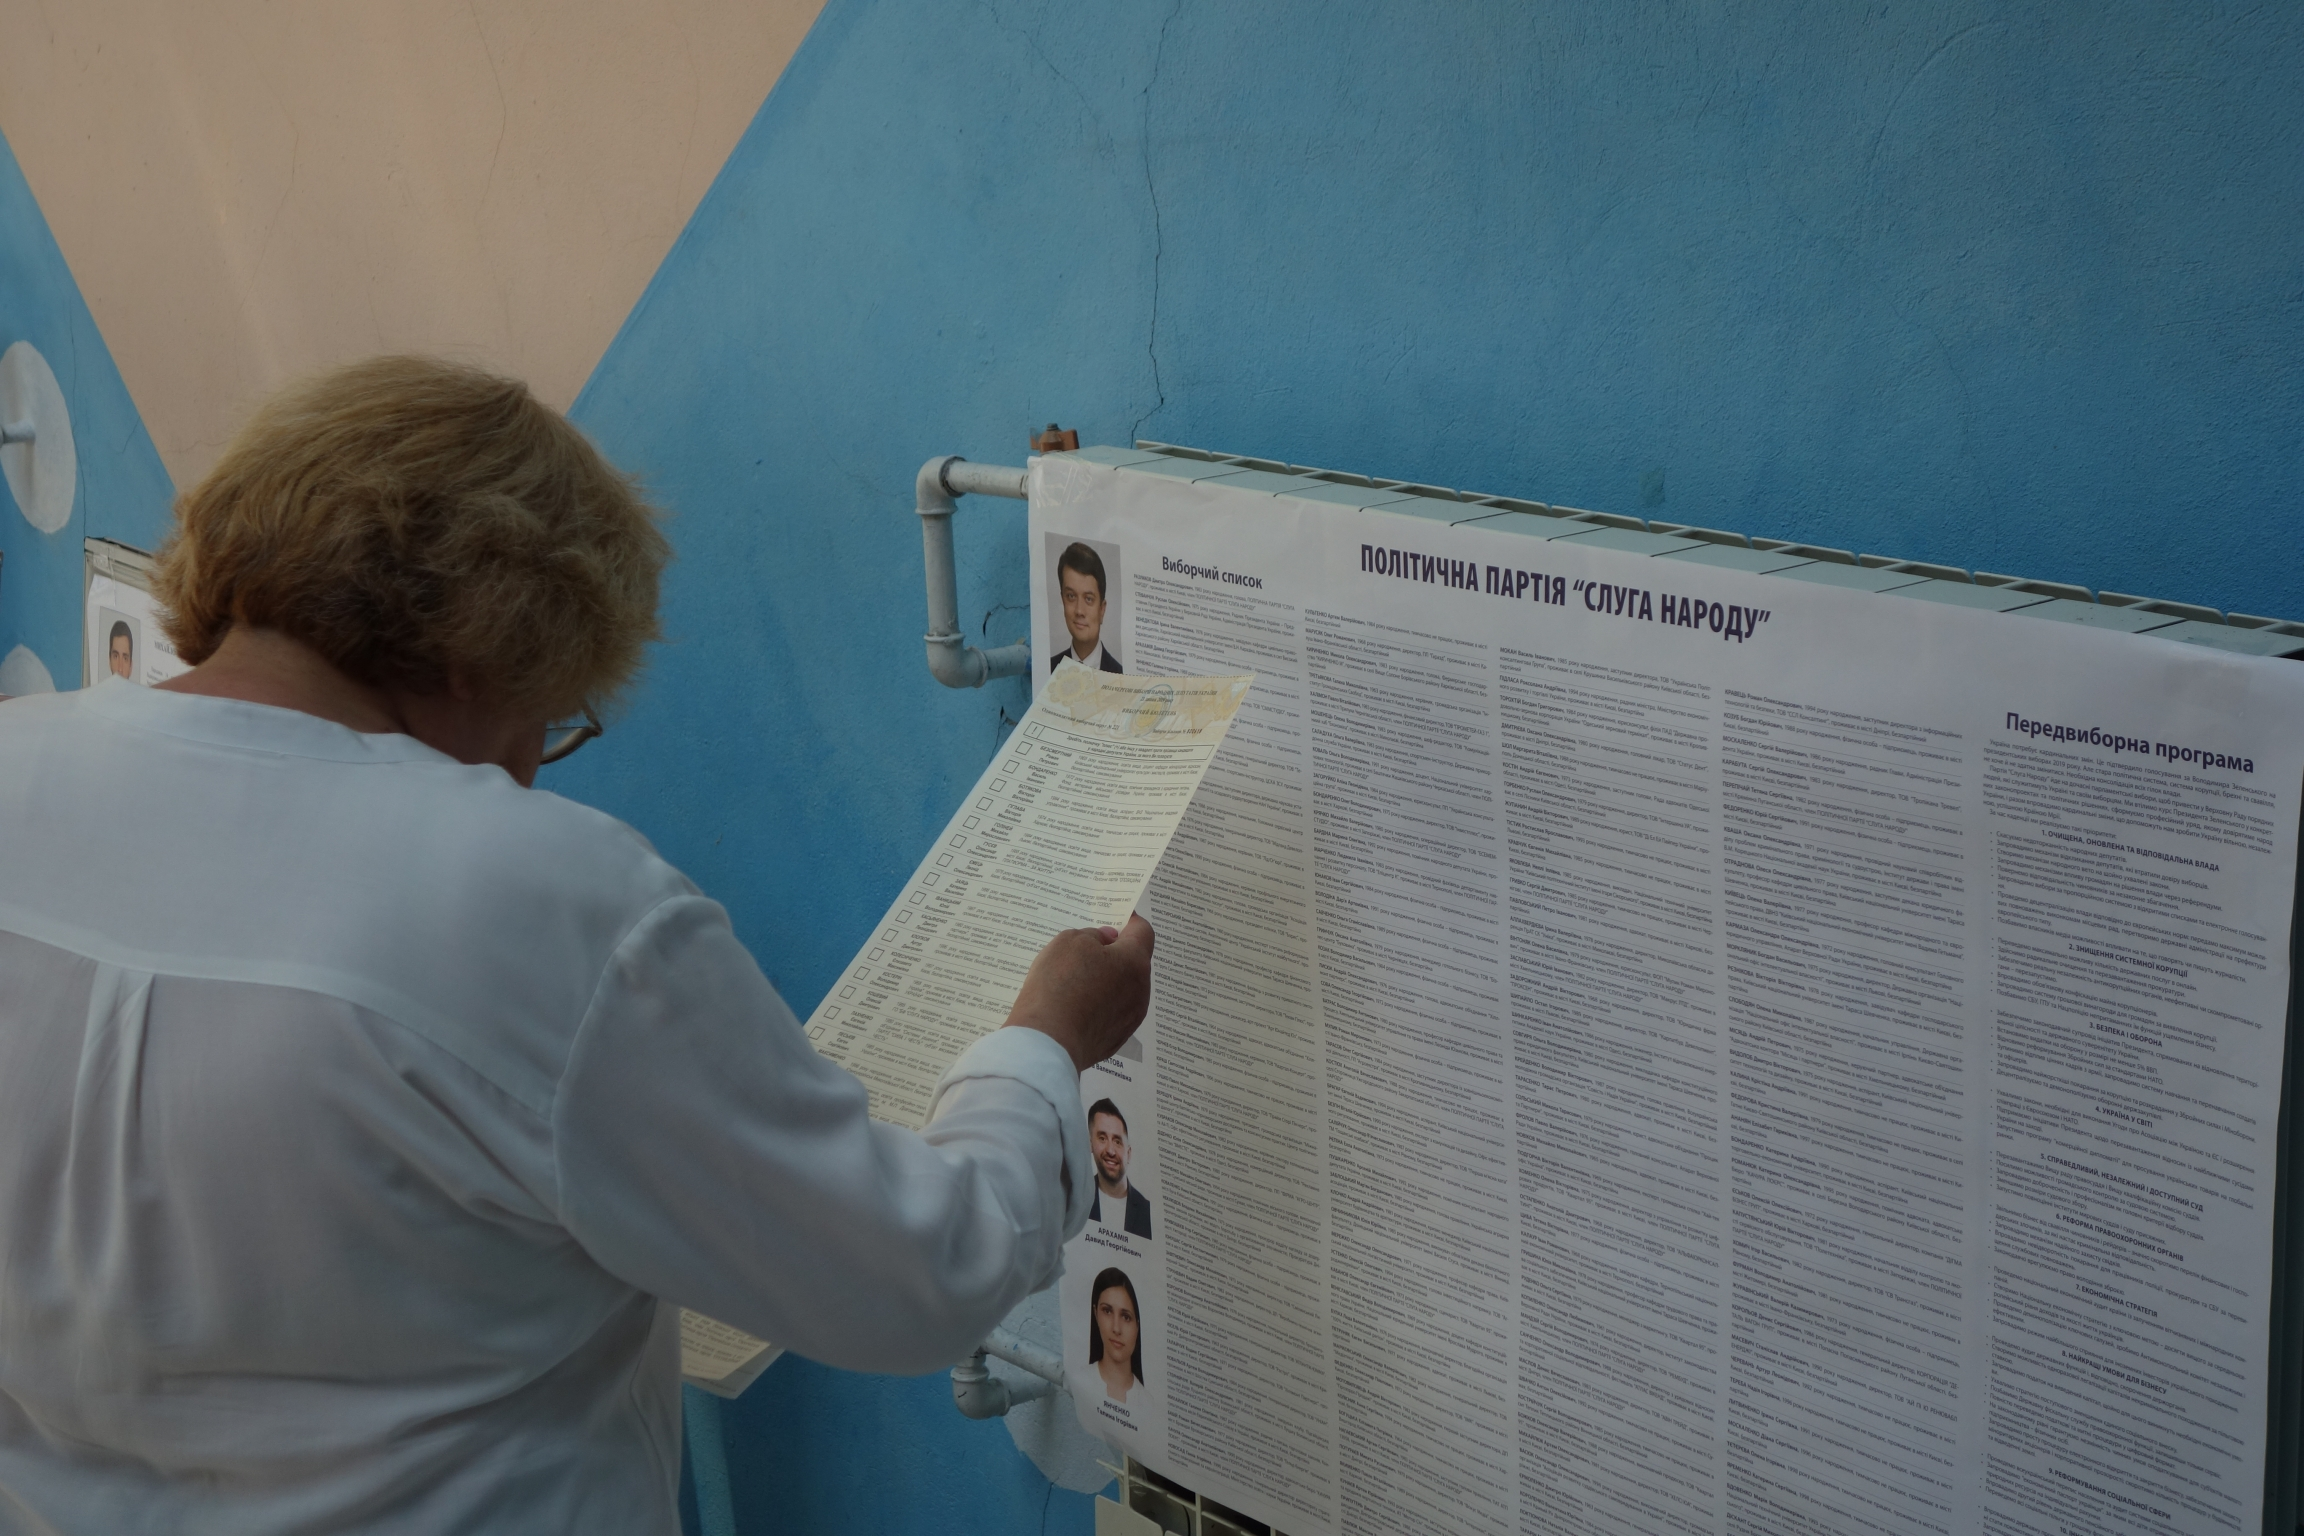 A voter reviews candidates in July 21 election